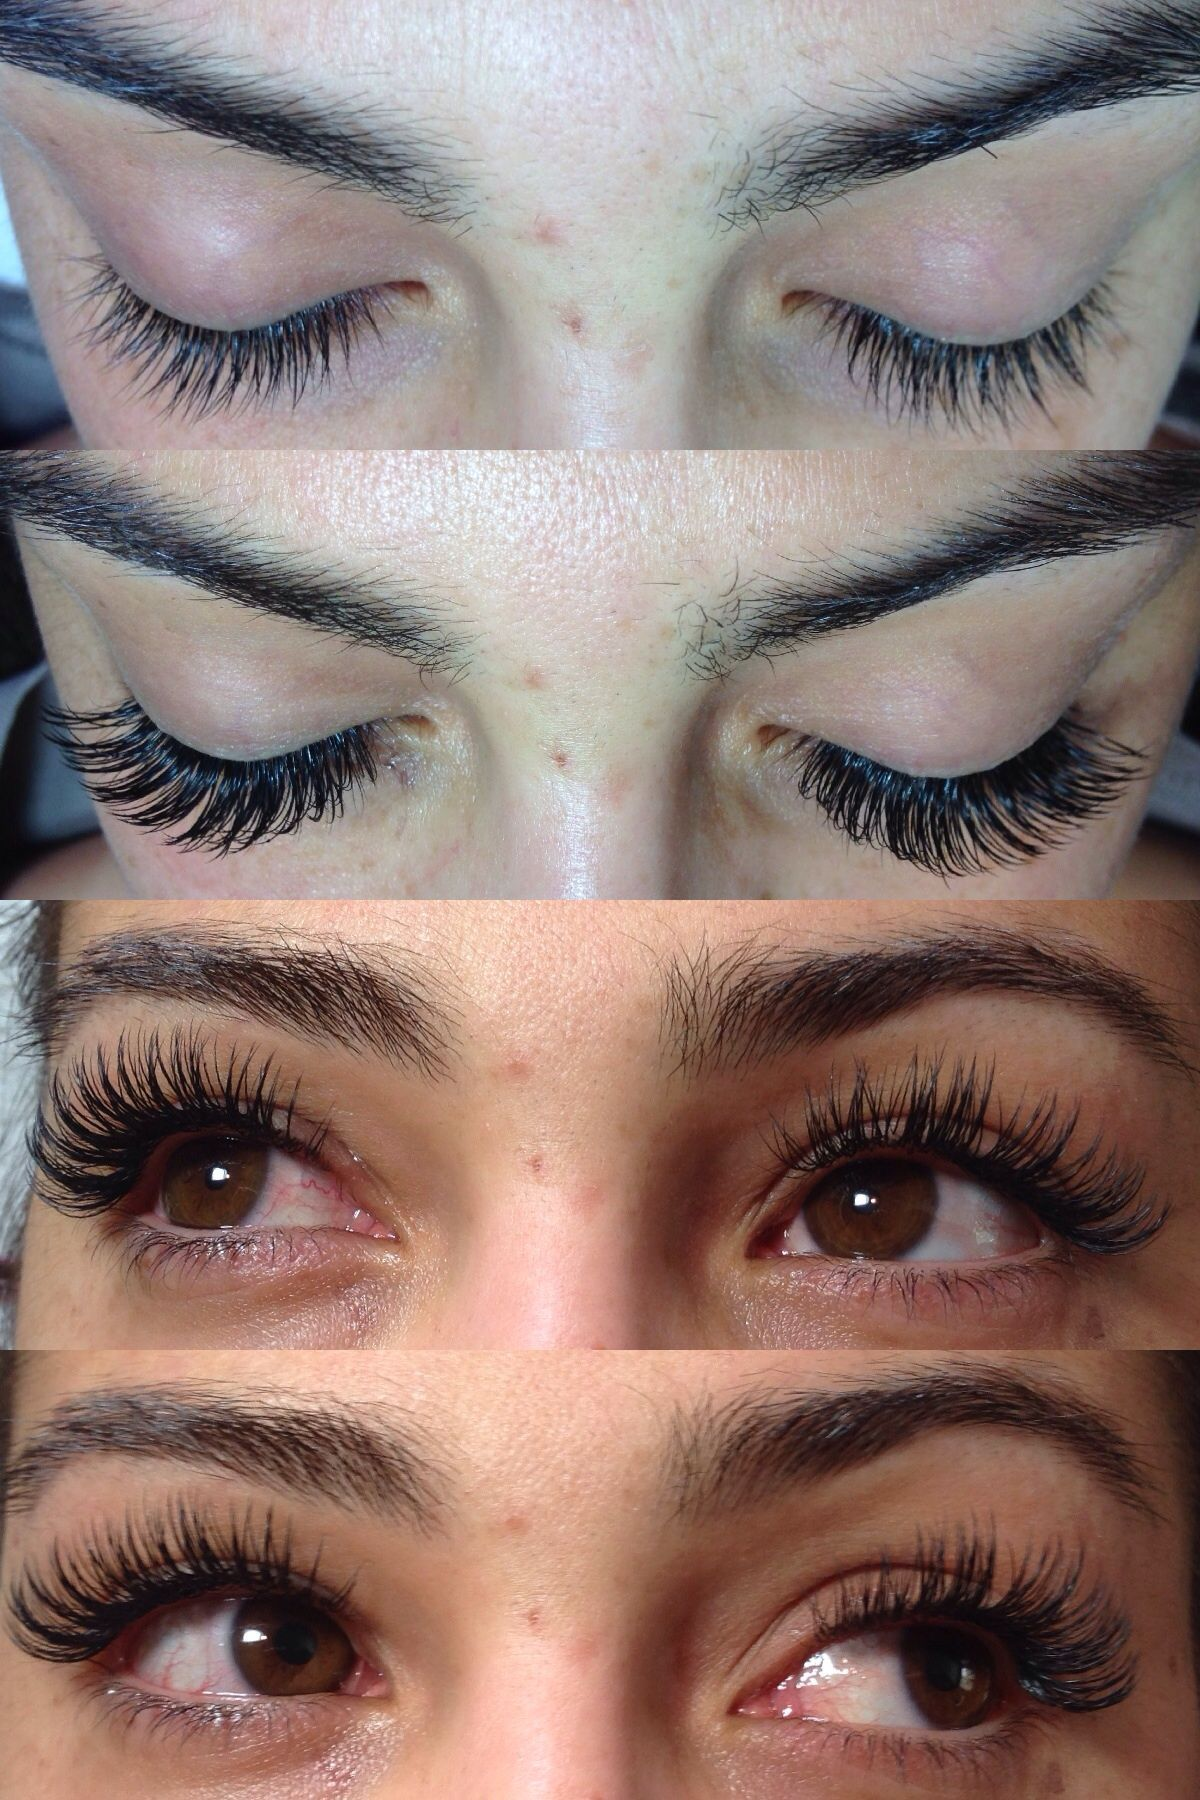 30da349773a Before and after photos of lash extensions on my beautiful sister.  #EyelashExtensionsCatEye